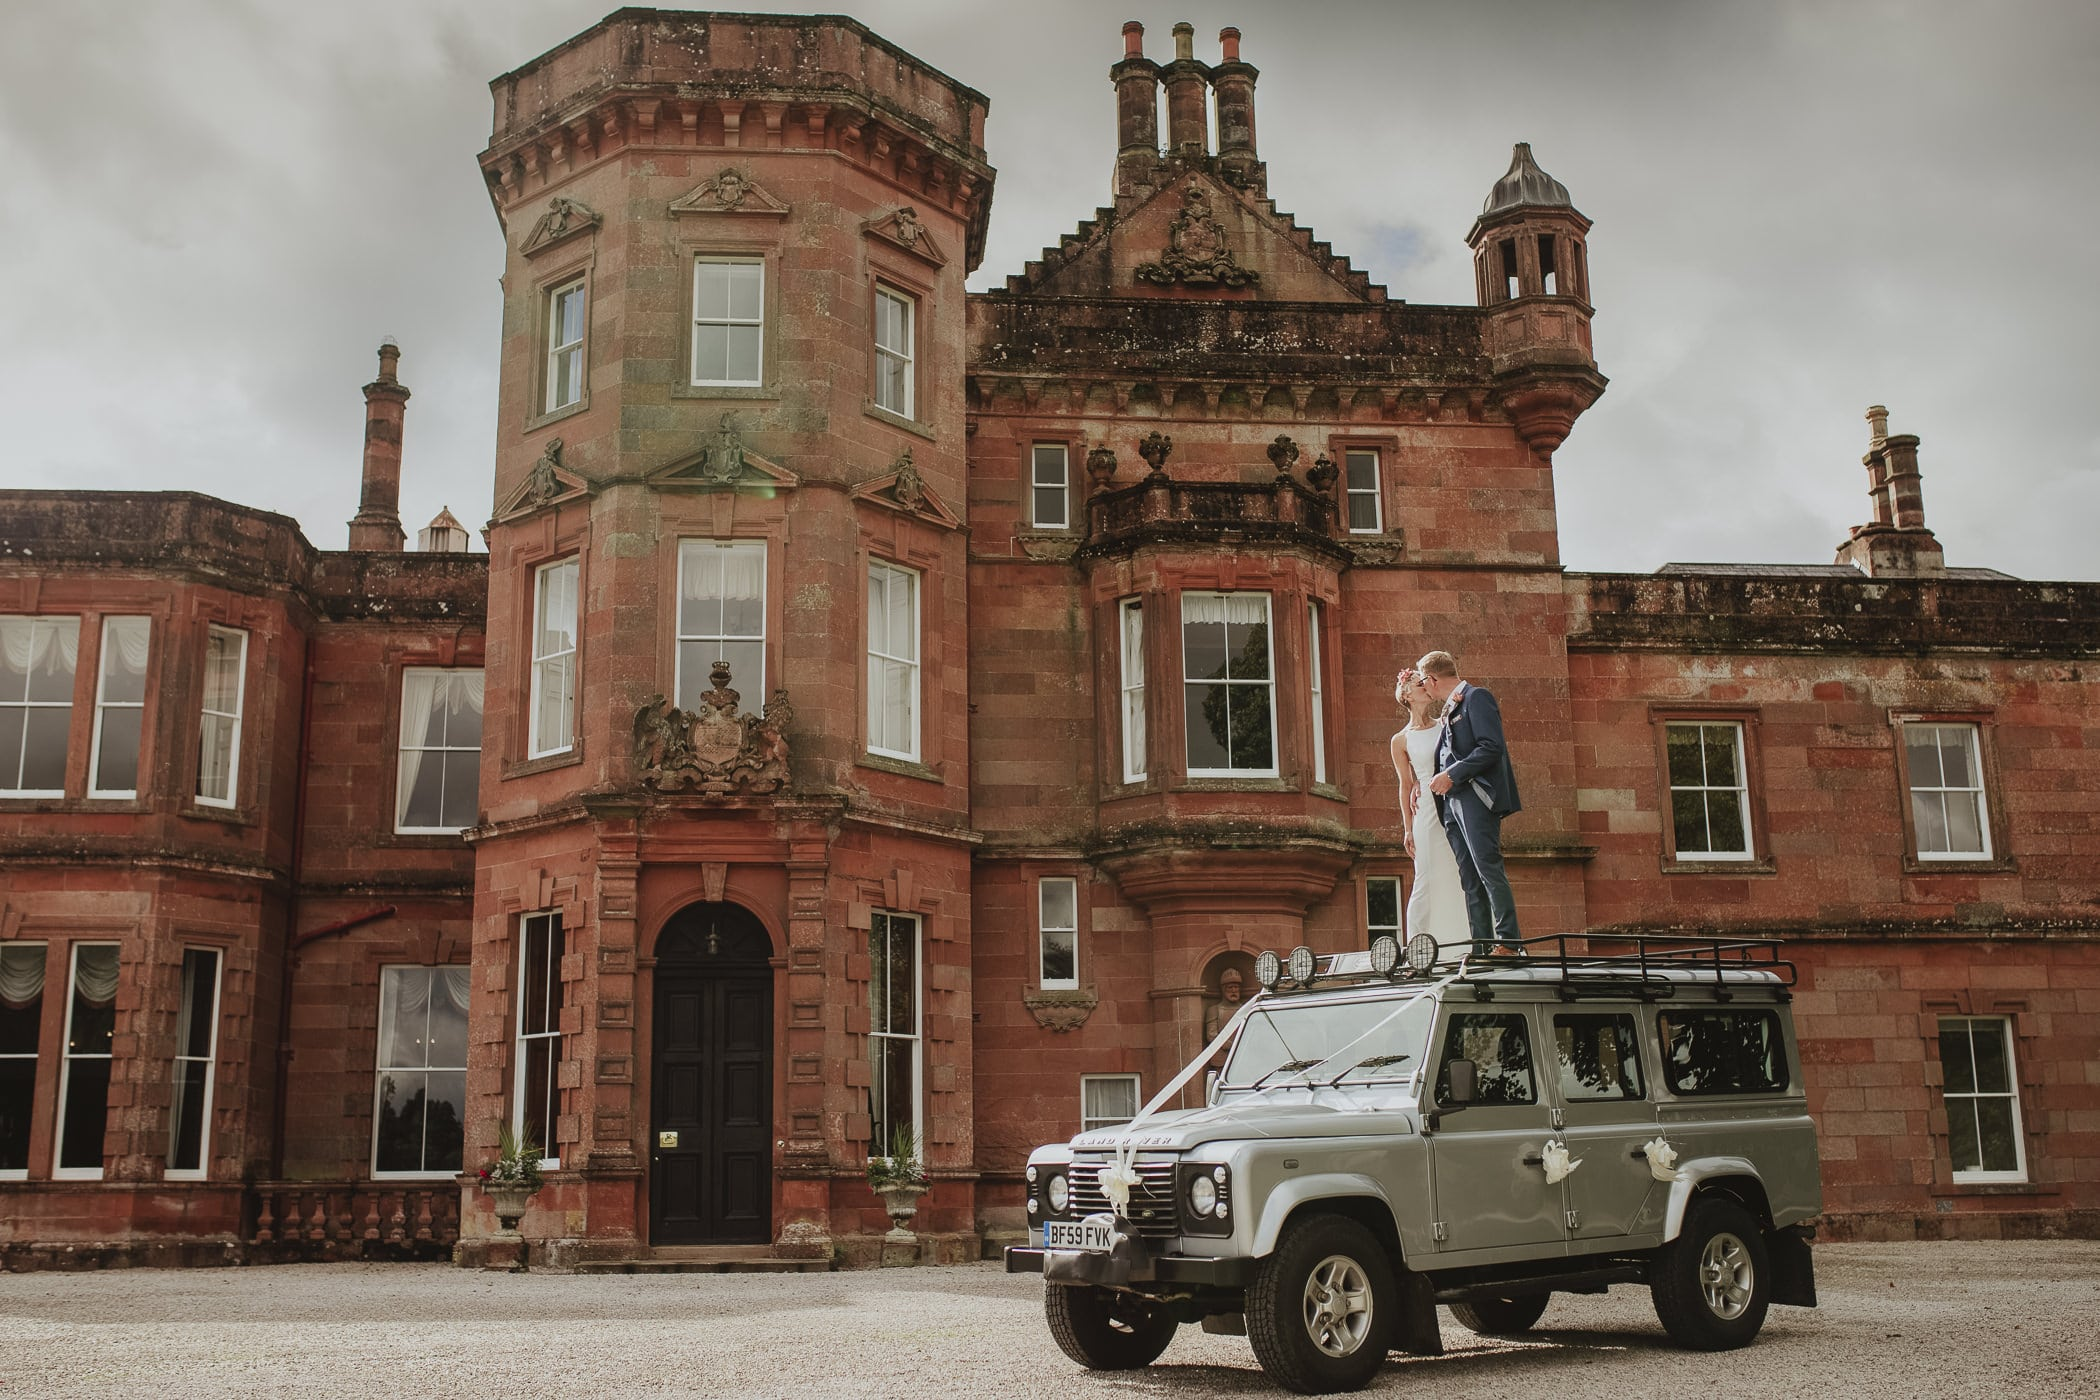 couple who eloped stood on top of Land Rover in a elopement wedding portrait